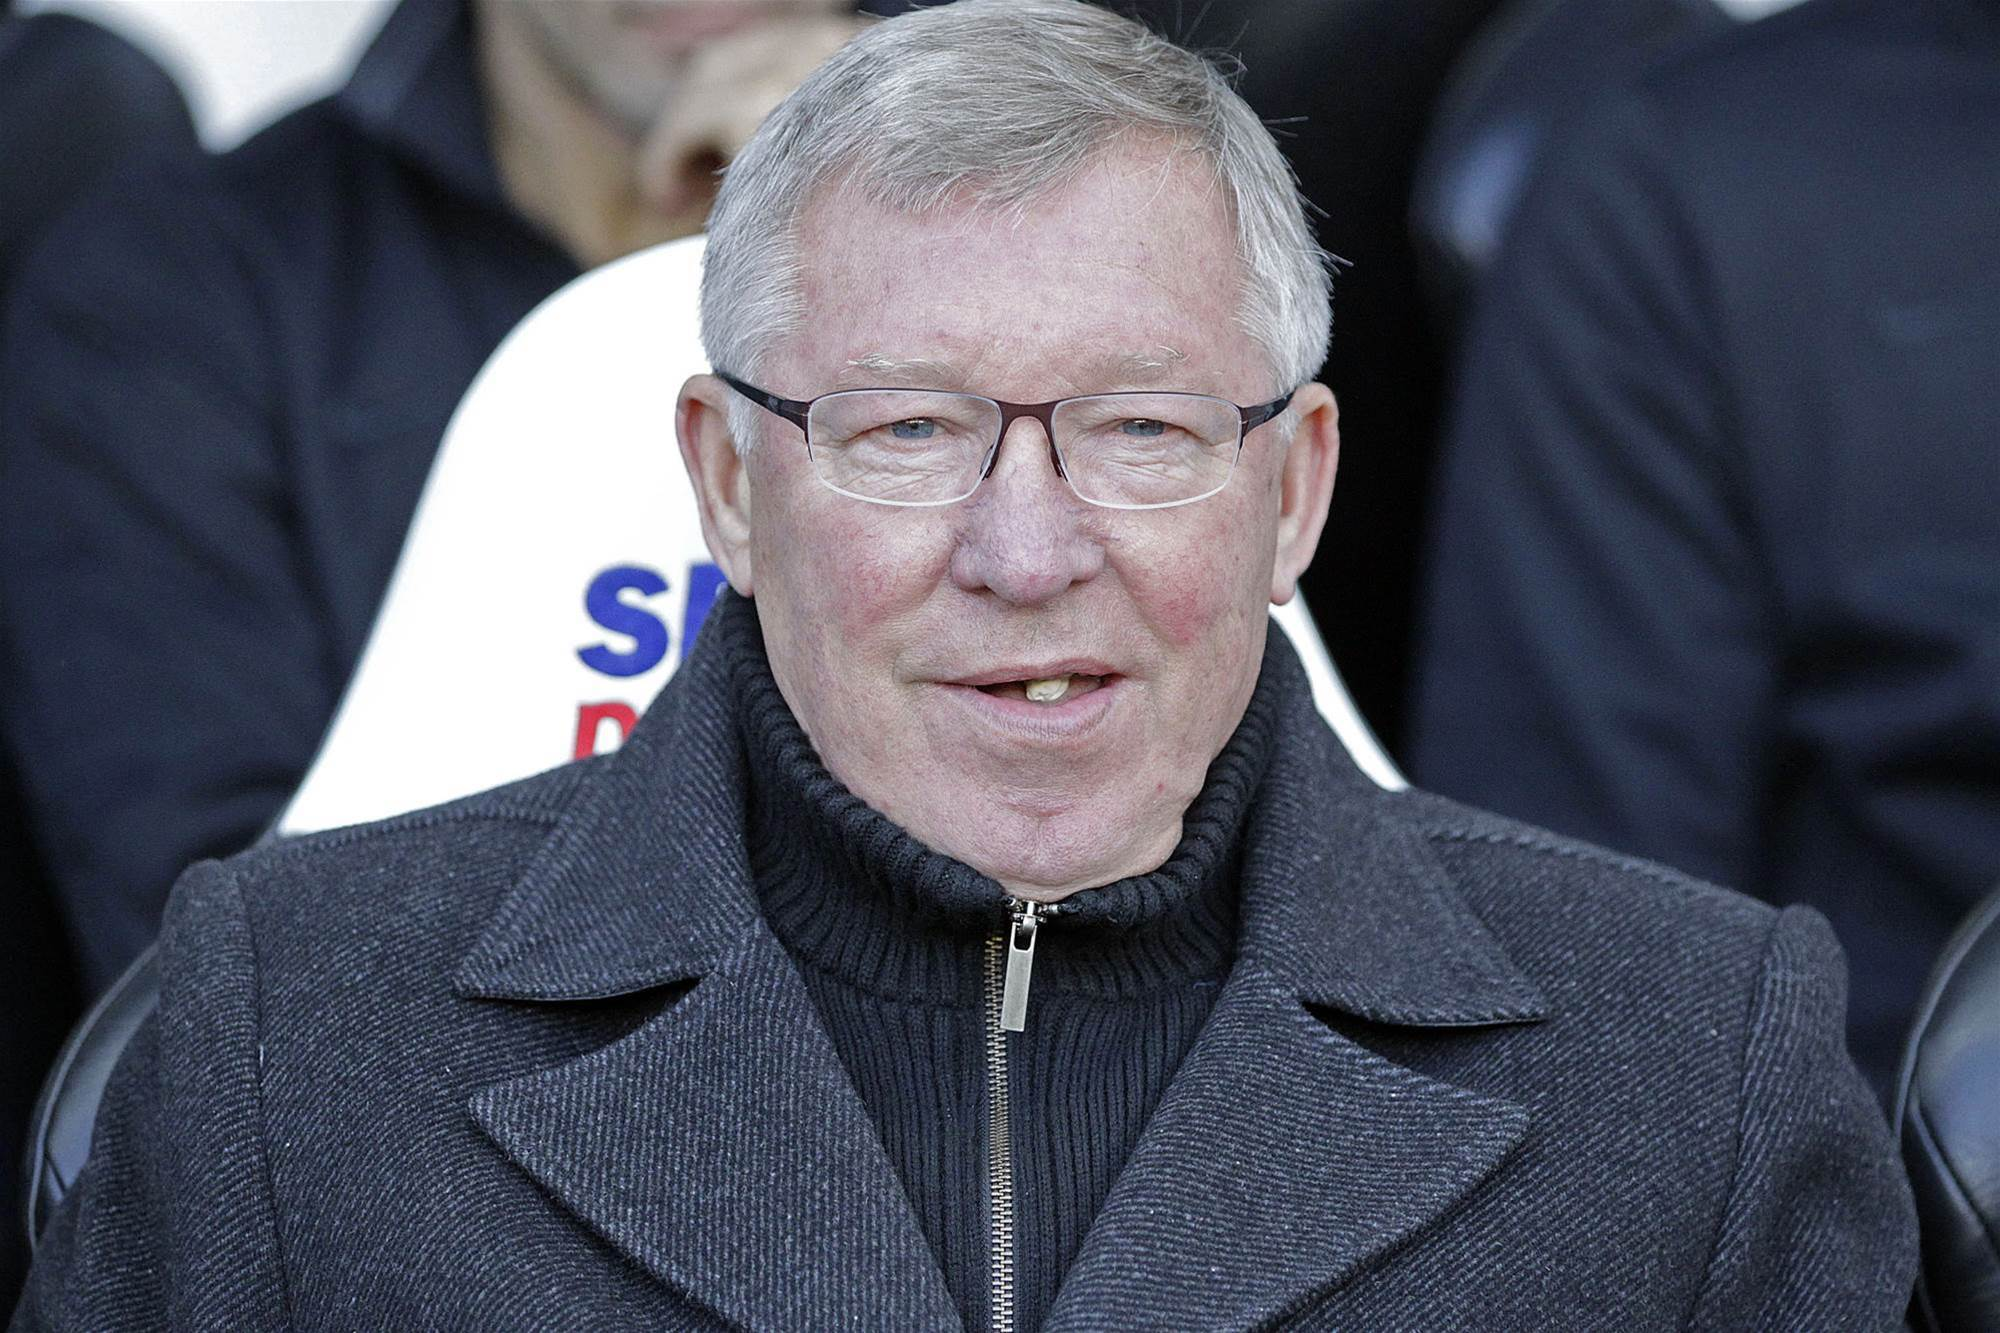 Sir Alex Ferguson's final chewing gum as manager sold for $720,000